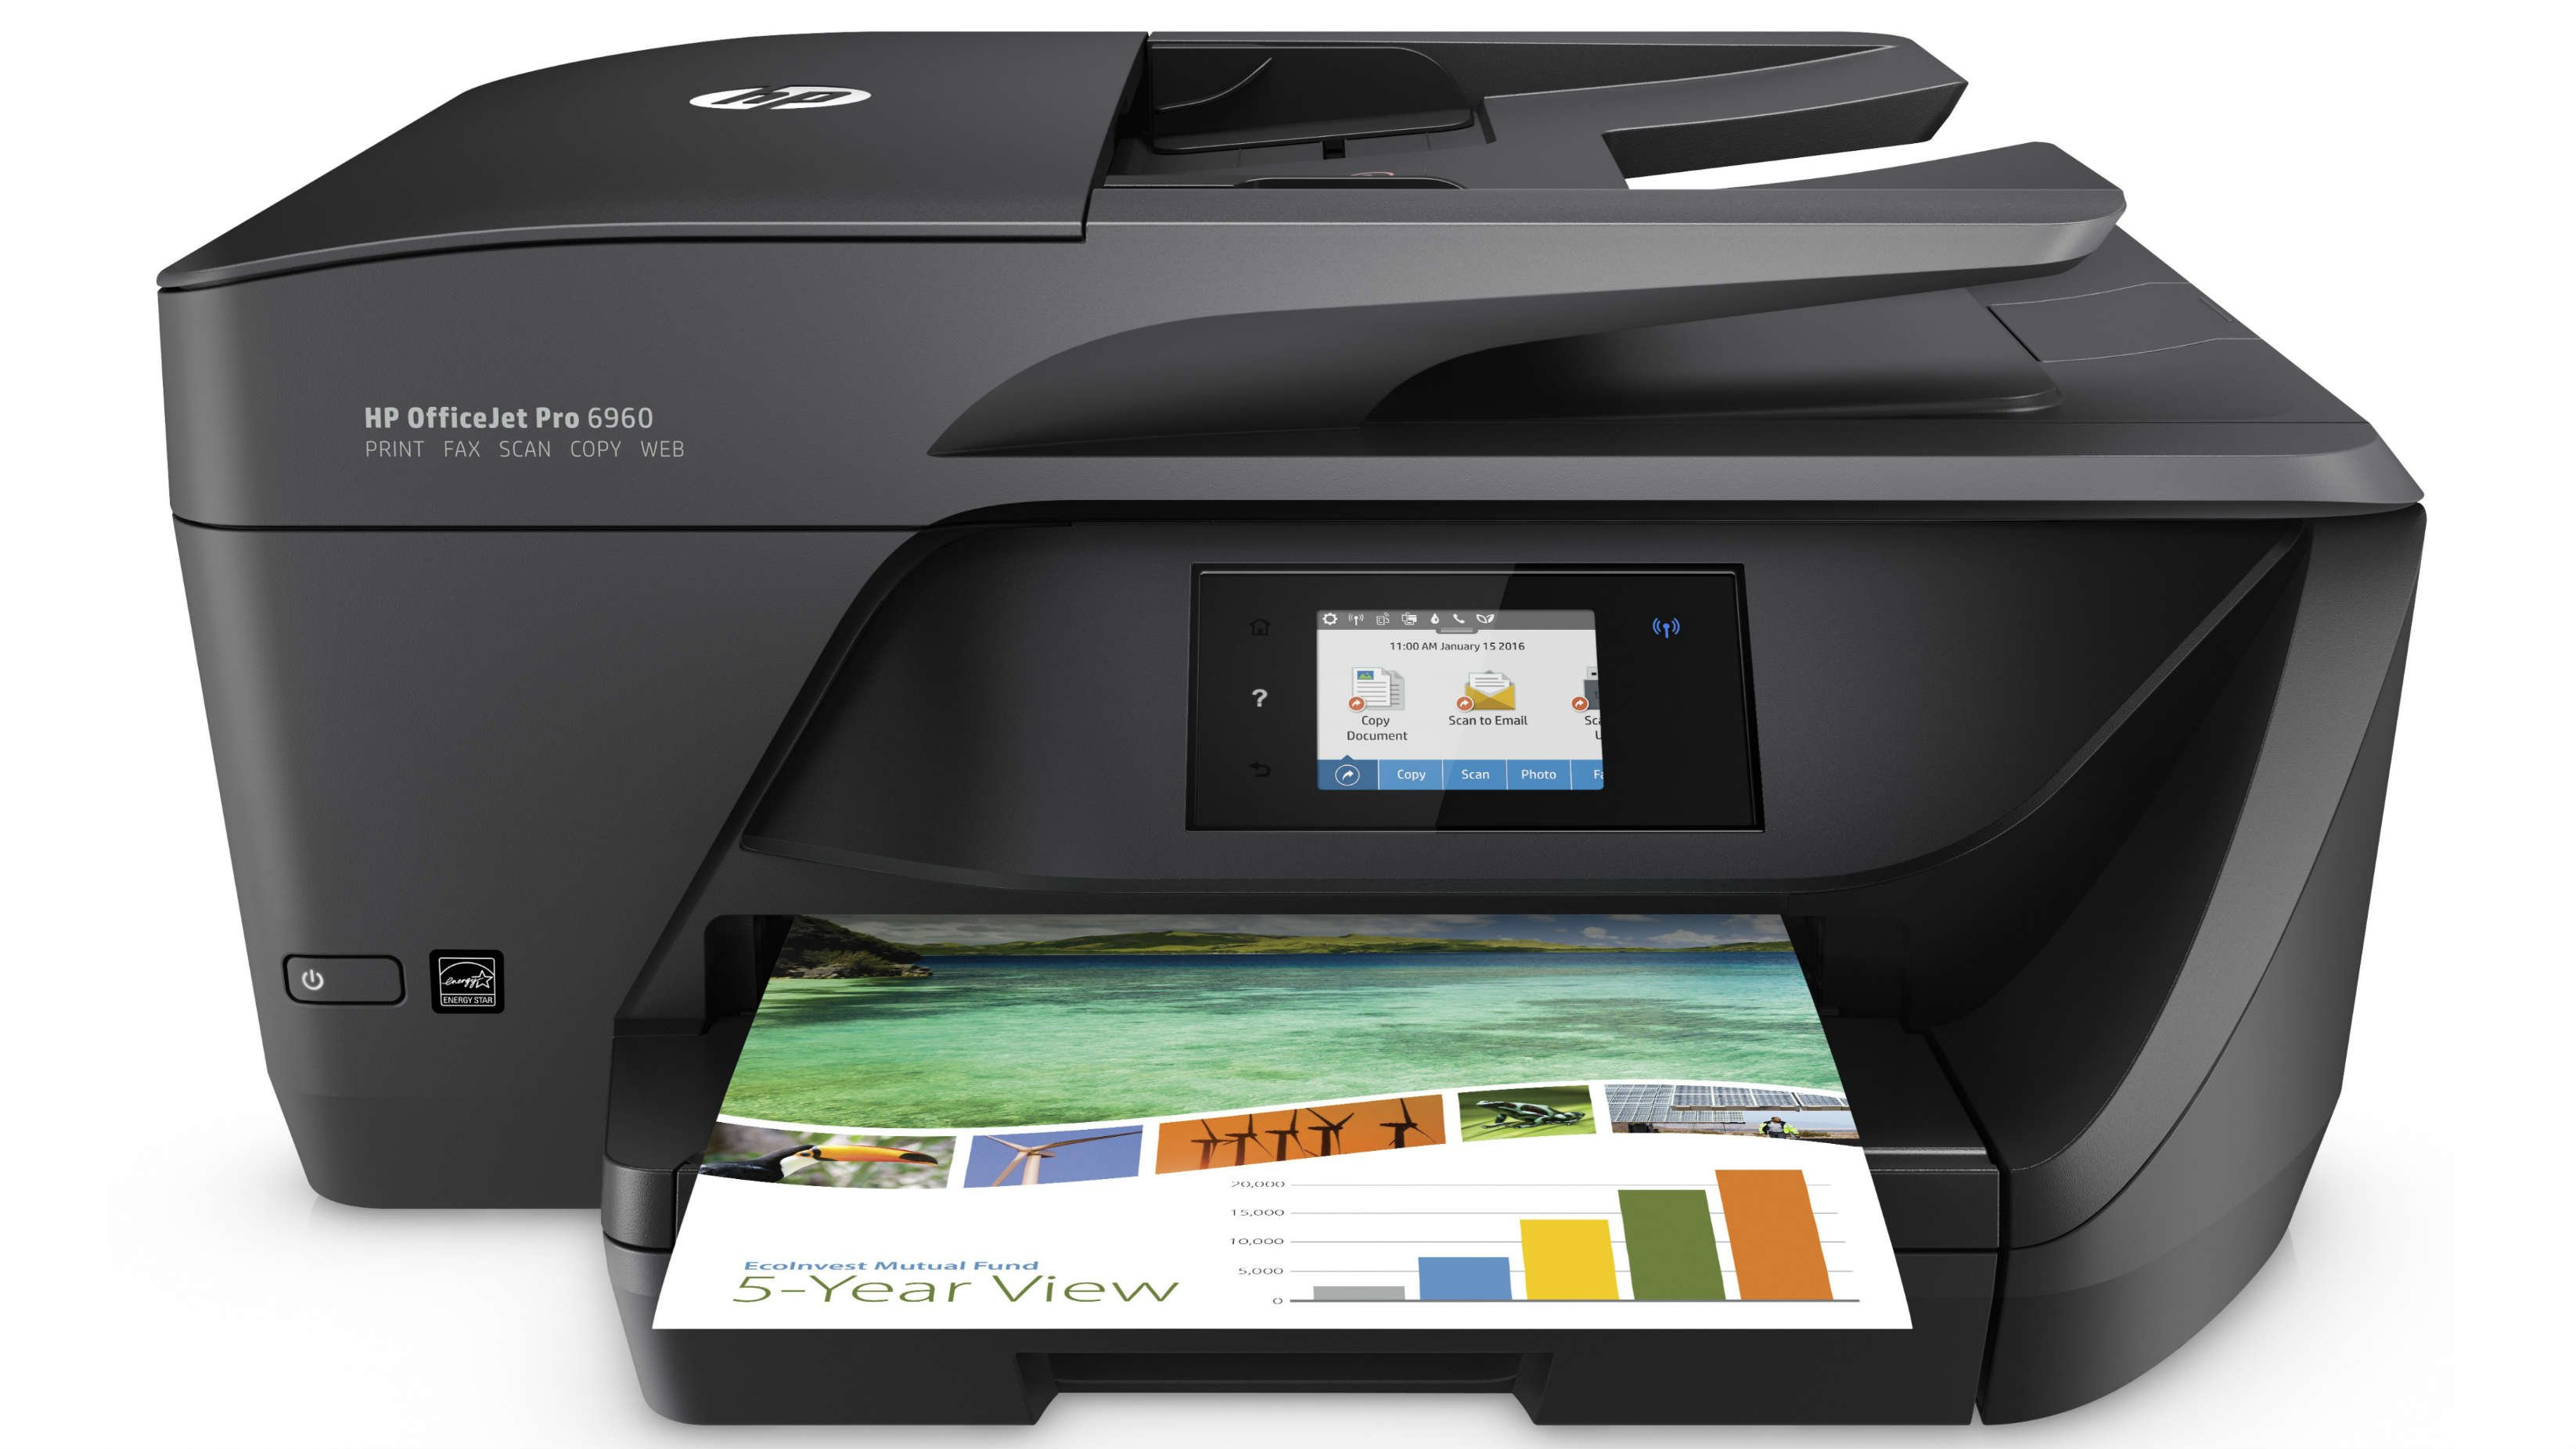 HP OfficeJet Pro 6960 Review A Capable All In One For